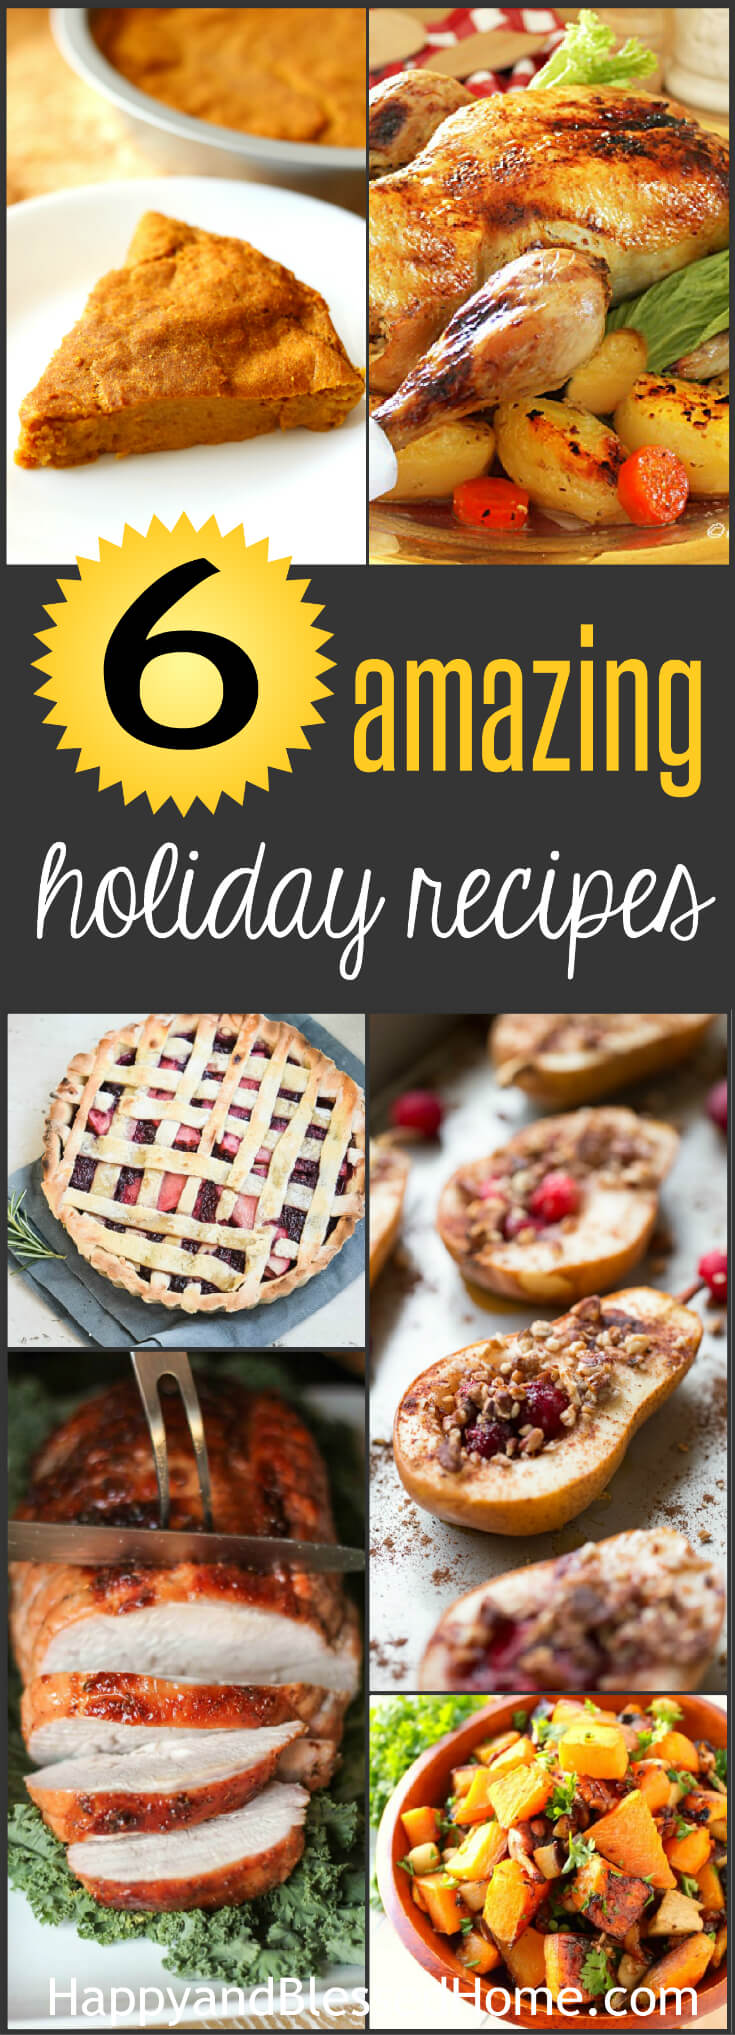 Six Amazing Holiday Recipes the whole family will LOVE!